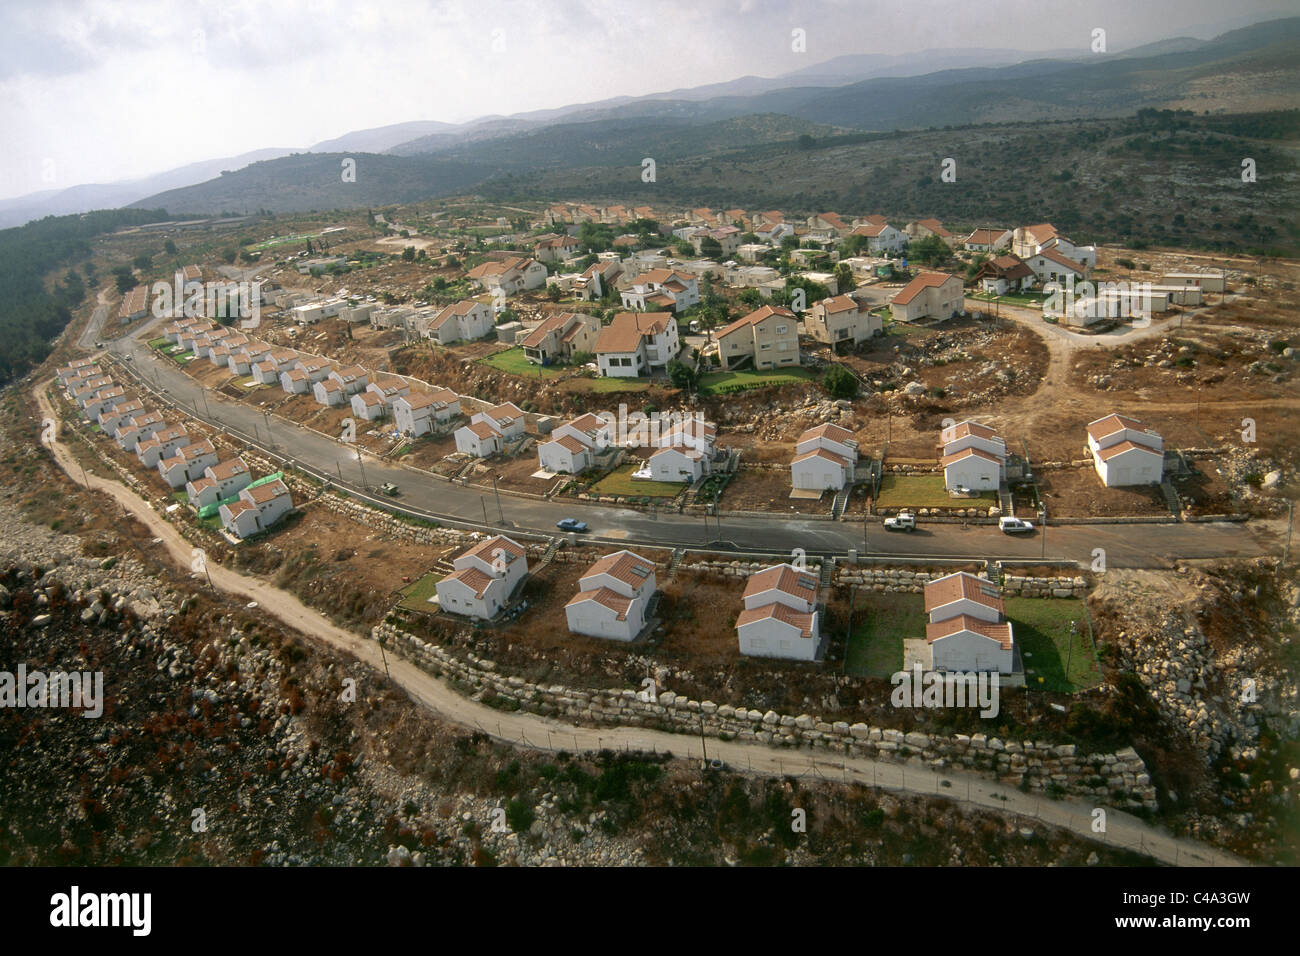 Aerial photograph of the Israeli settlement of Mevo Dotan in the West Bank - Stock Image